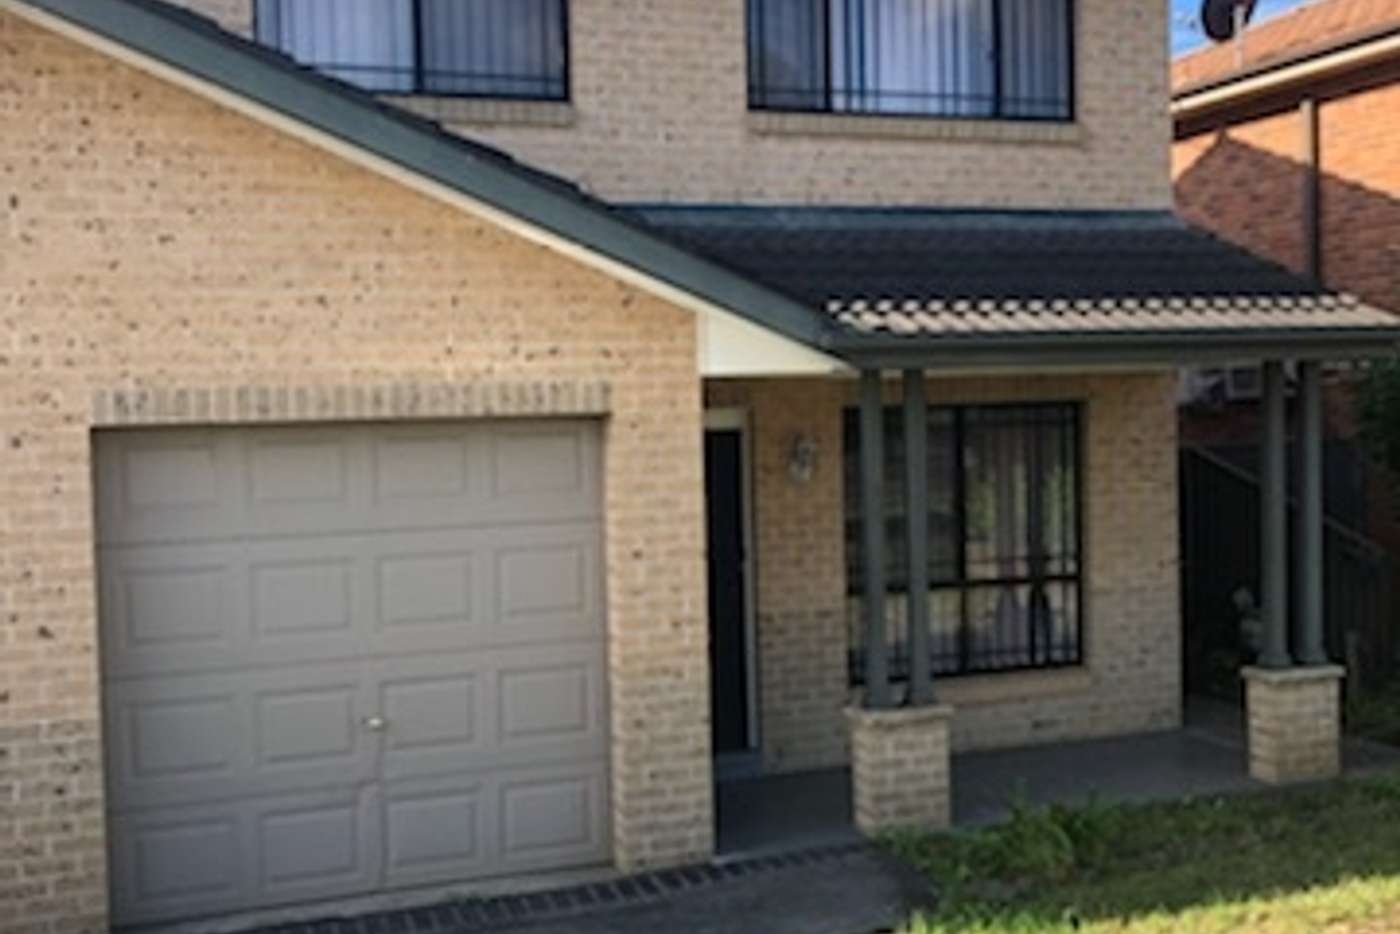 Main view of Homely house listing, 277 Green Valley Road, Green Valley NSW 2168